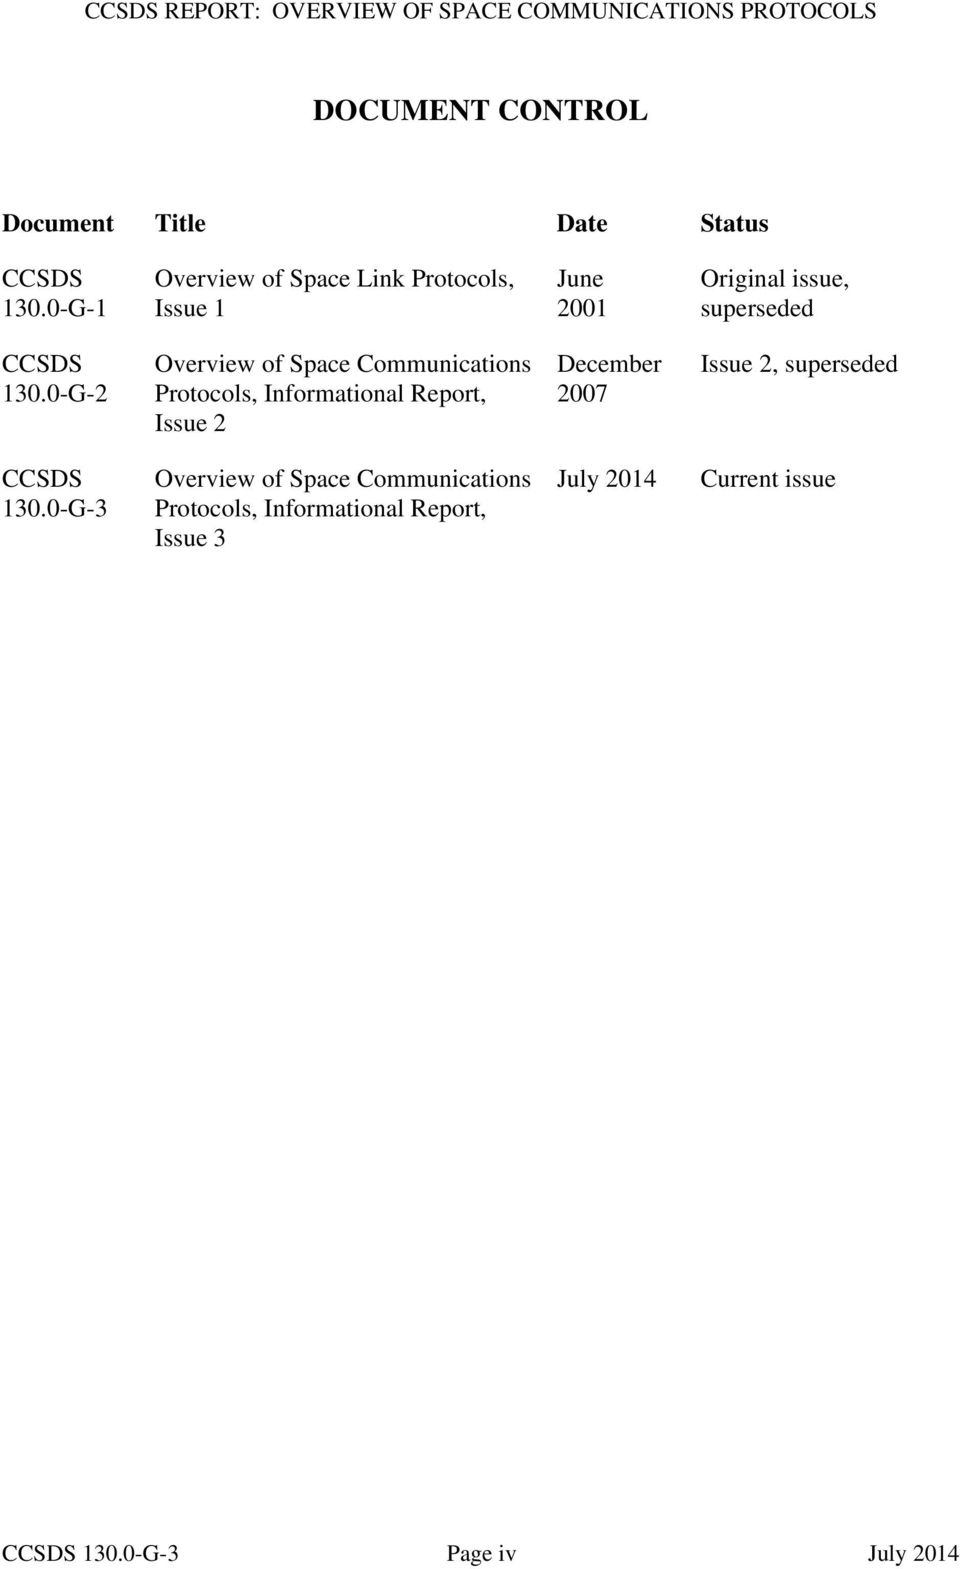 0-G-2 Overview of Space Communications Protocols, Informational Report, Issue 2 December 2007 Issue 2,